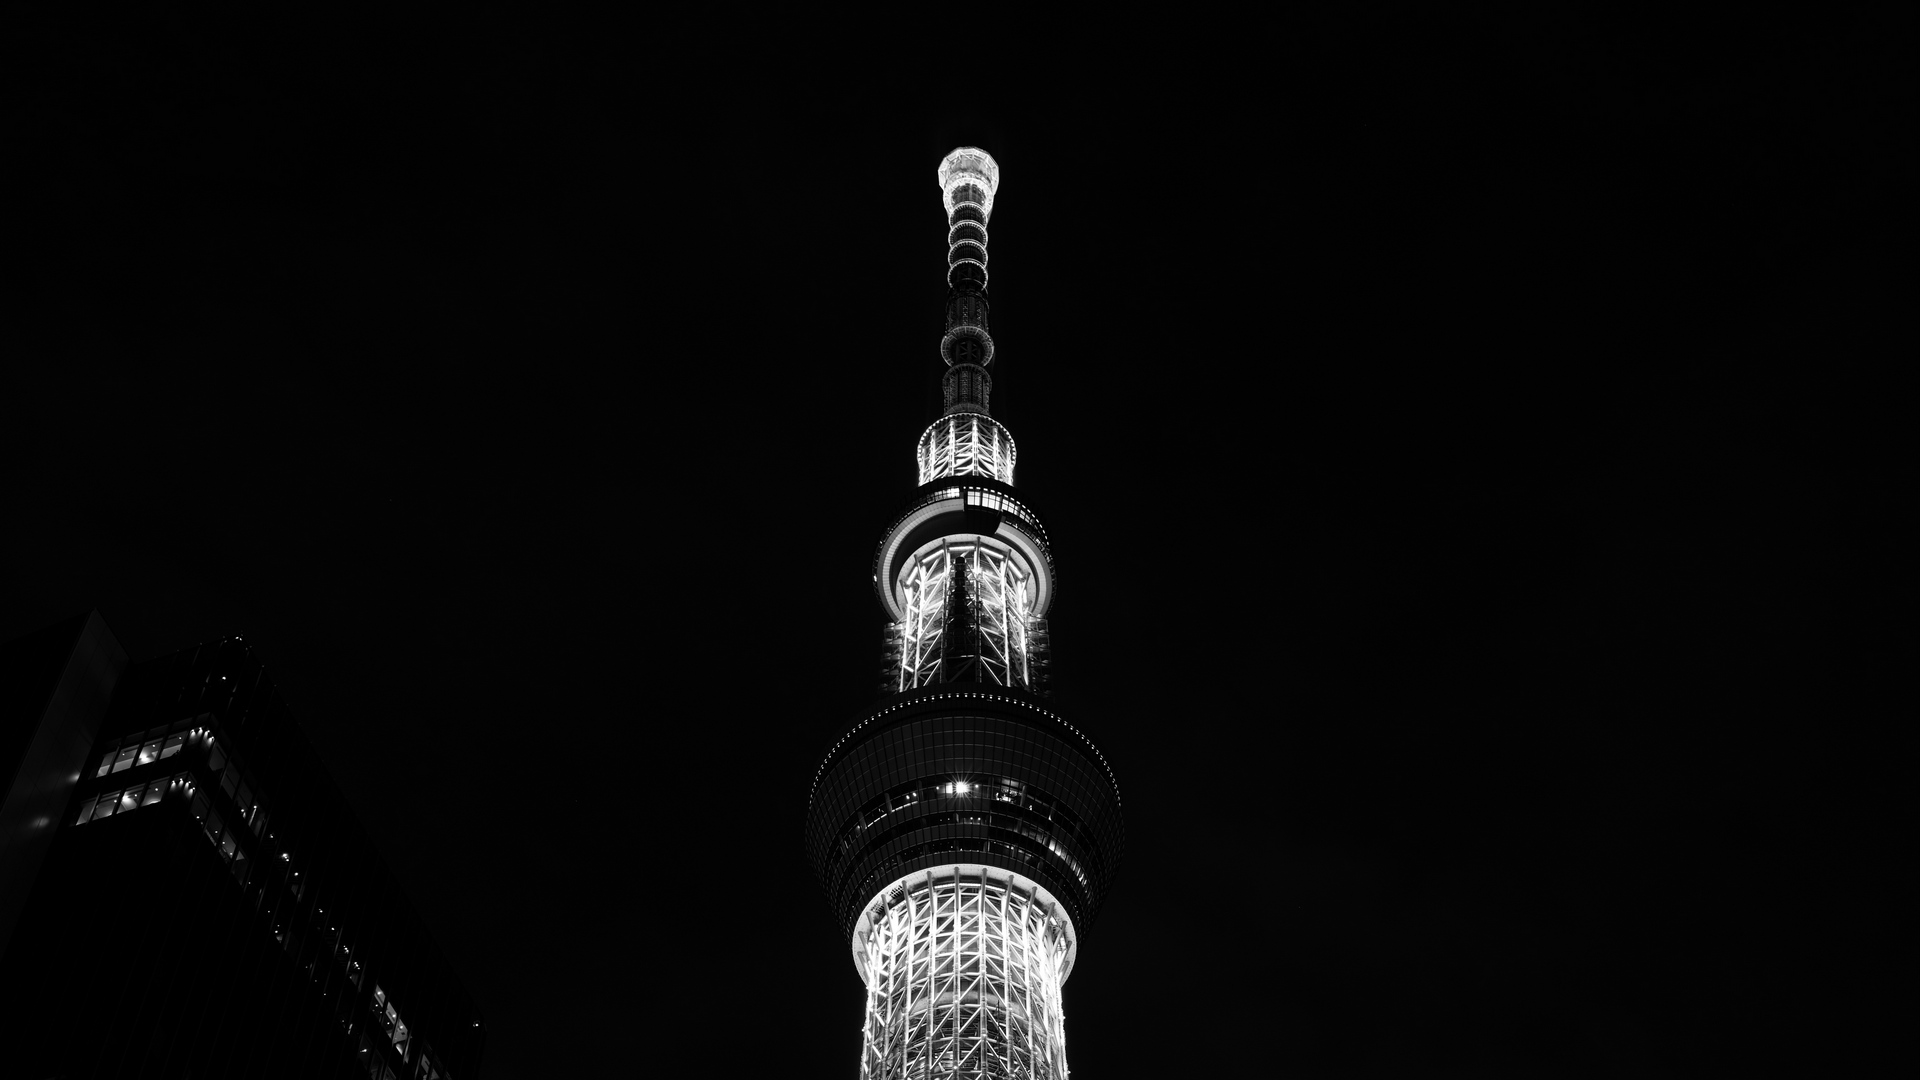 tower night city bw x